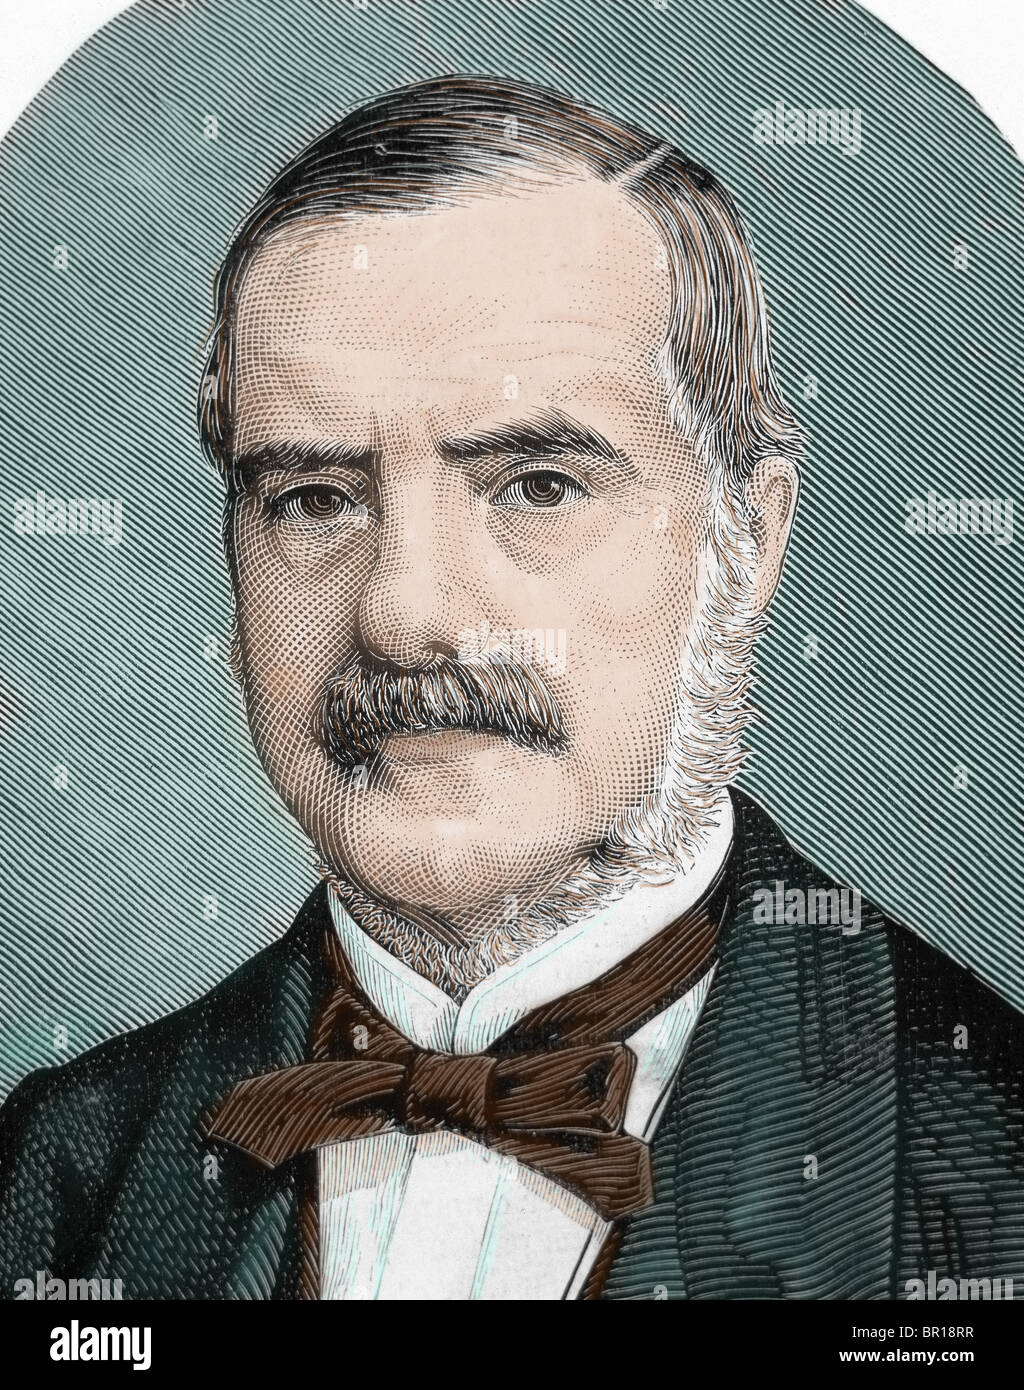 RHODES, Cecil John (1853-1902). English businessman and politician. Colored engraving. - Stock Image